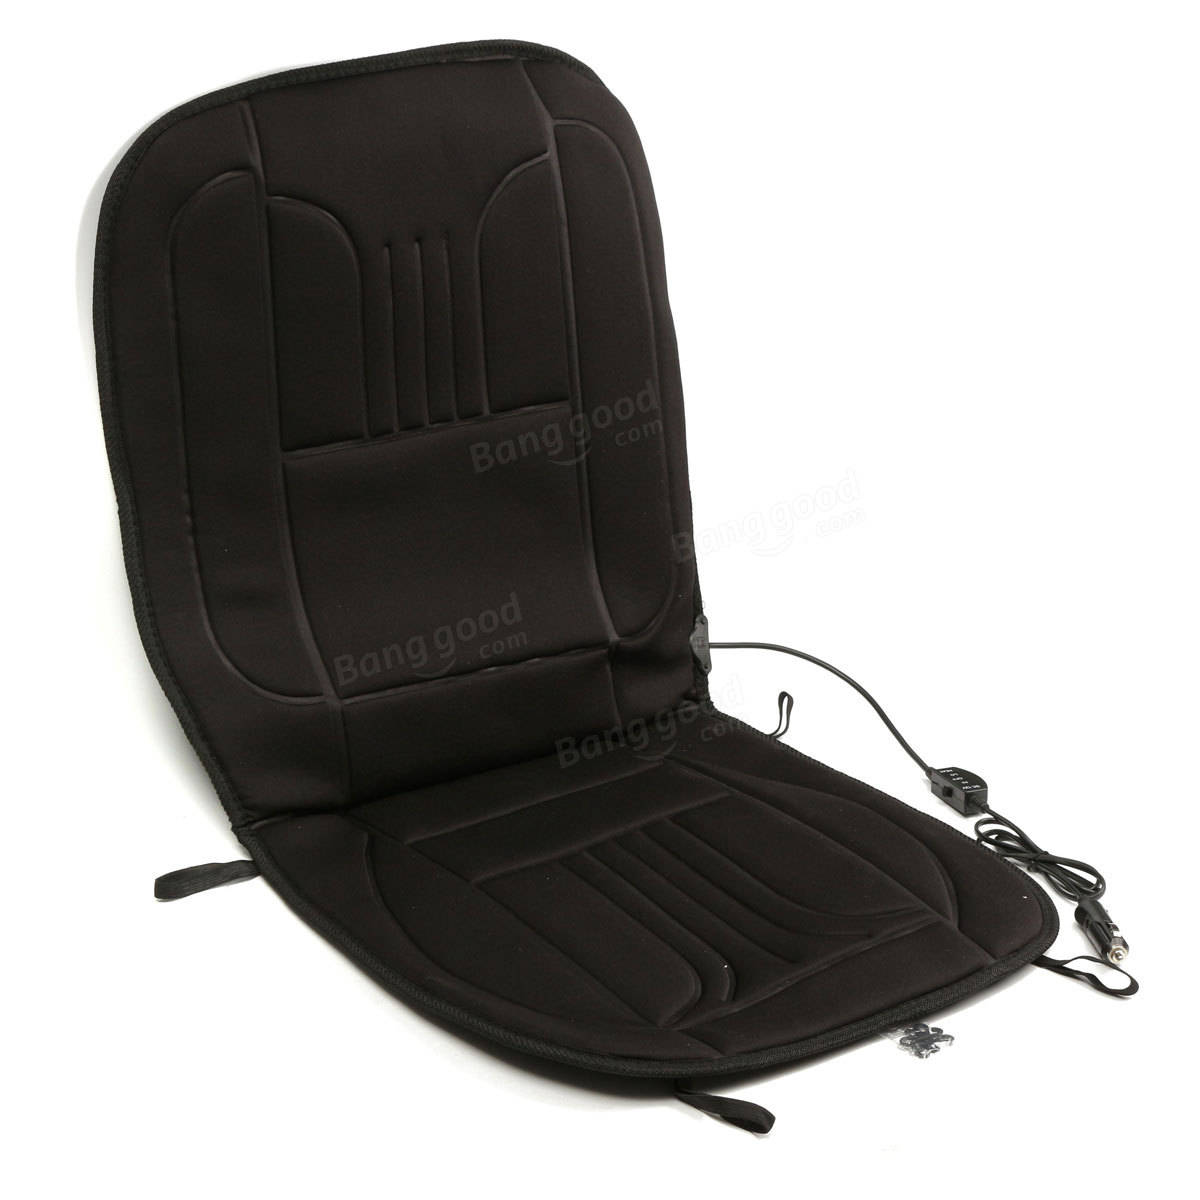 Massage Chair For Car Heated Back Massage Chair Cushion Massager Car Seat Home